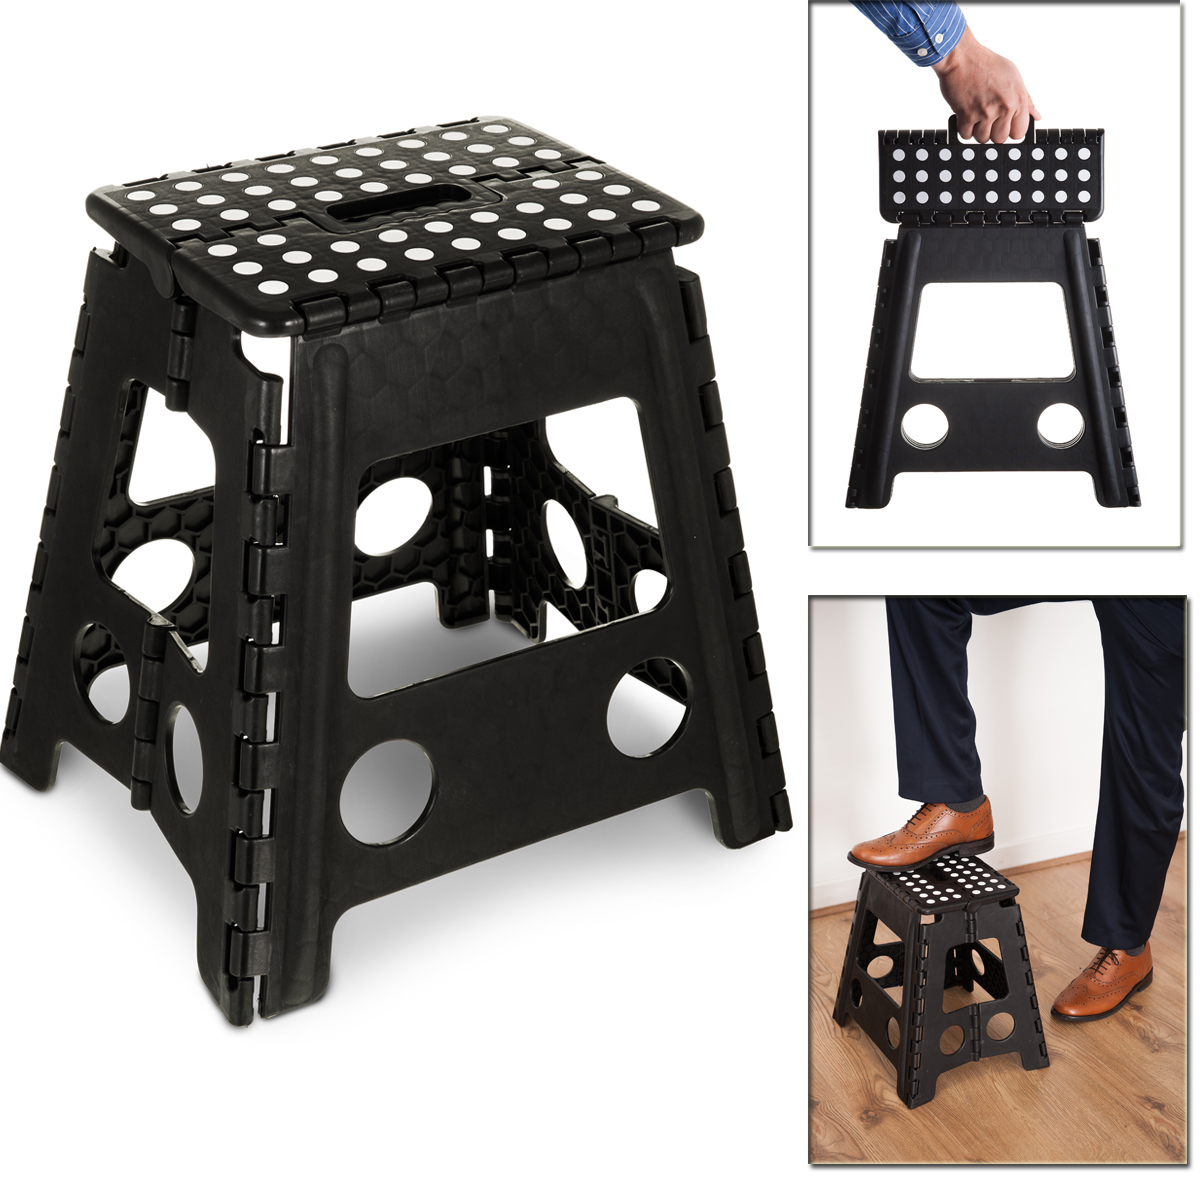 Peachy Details About Large Multi Purpose Fold Step Stool Plastic Home Kitchen Foldable Easy Storage Ocoug Best Dining Table And Chair Ideas Images Ocougorg